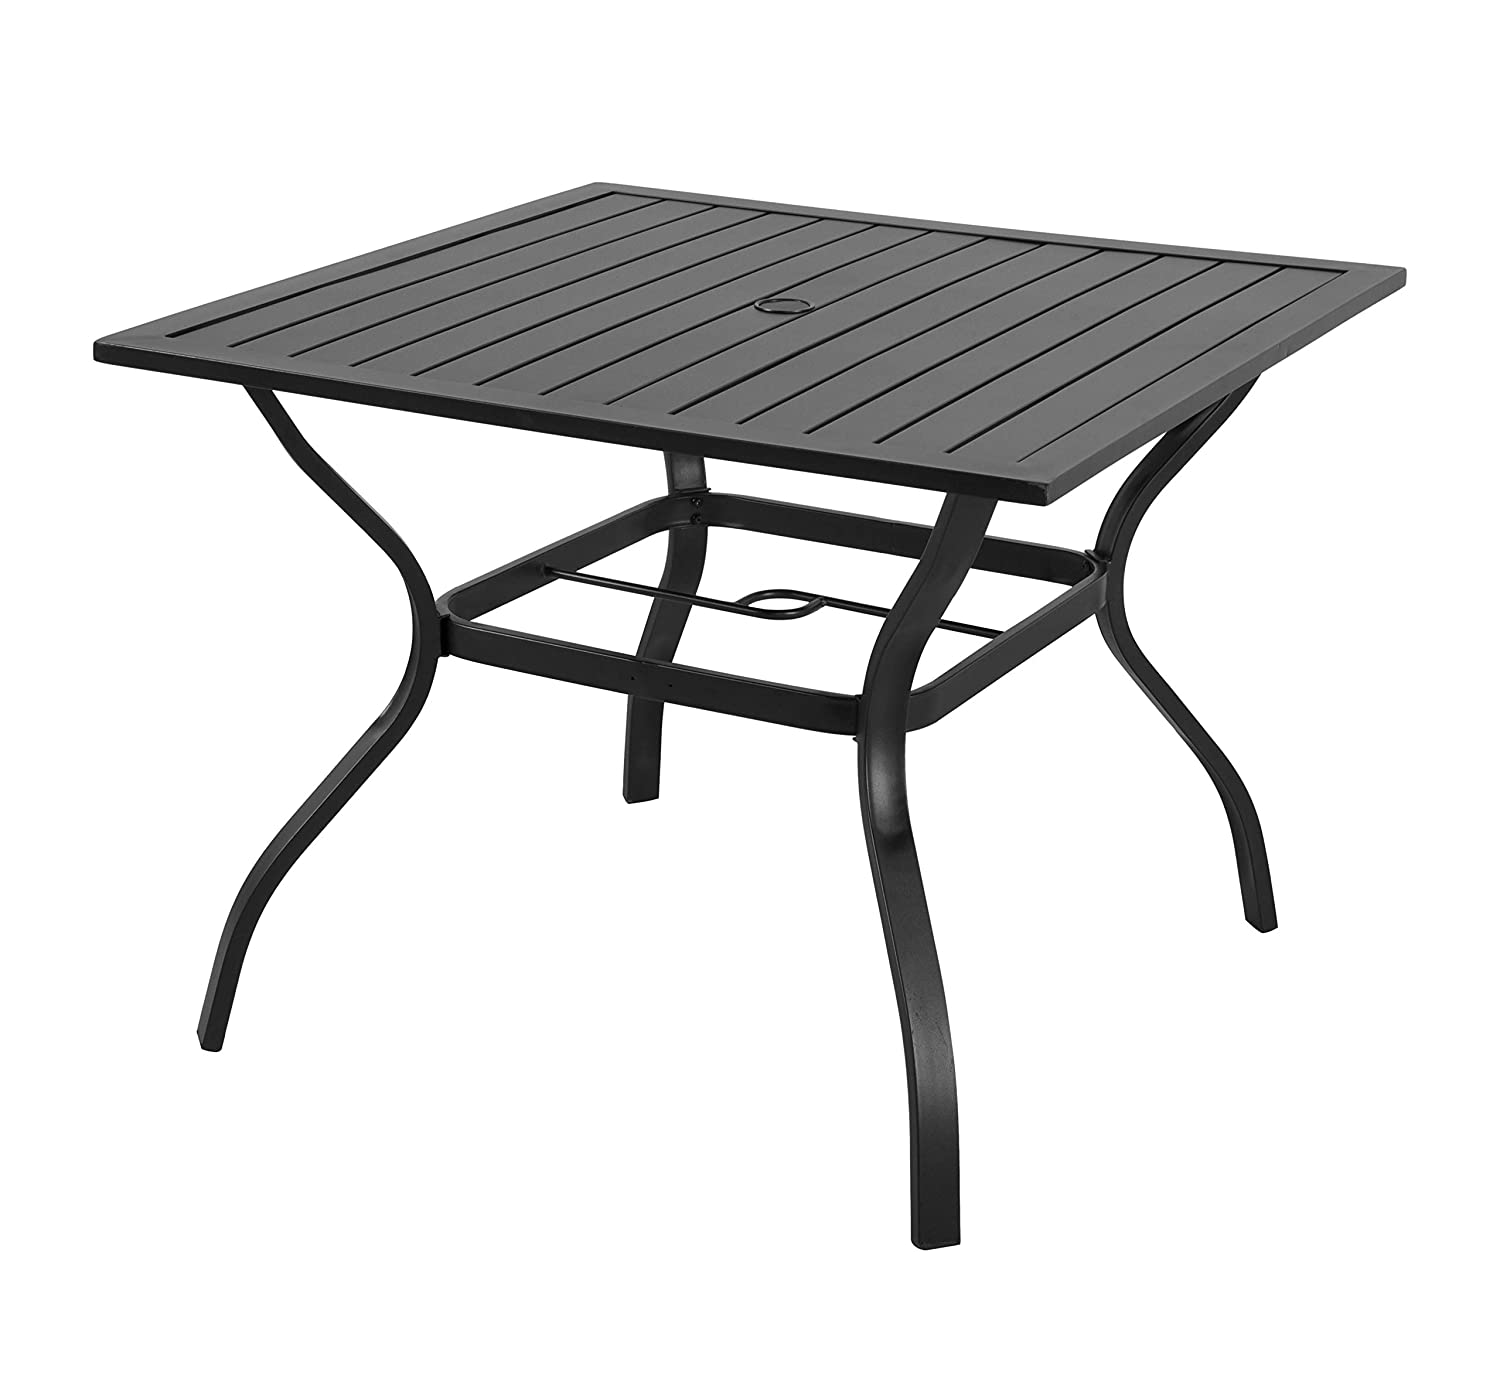 """EMERIT Outdoor Patio Bistro Metal Dining Table with Umbrella Hole 37""""x37"""",Black (Dining Table)"""